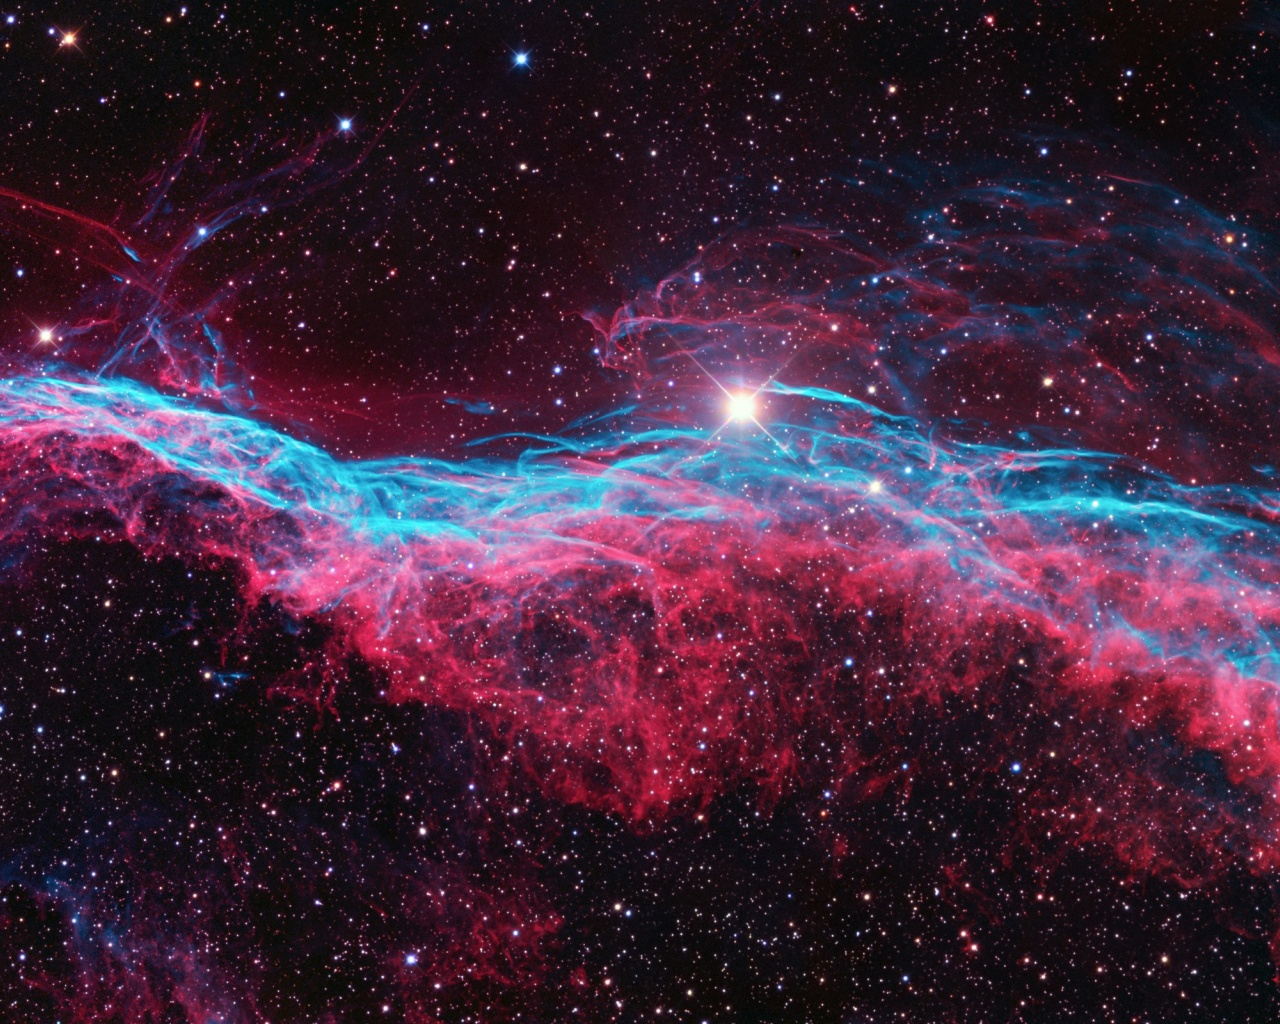 1280x1024 Outer Space Colors desktop PC and Mac wallpaper 1280x1024